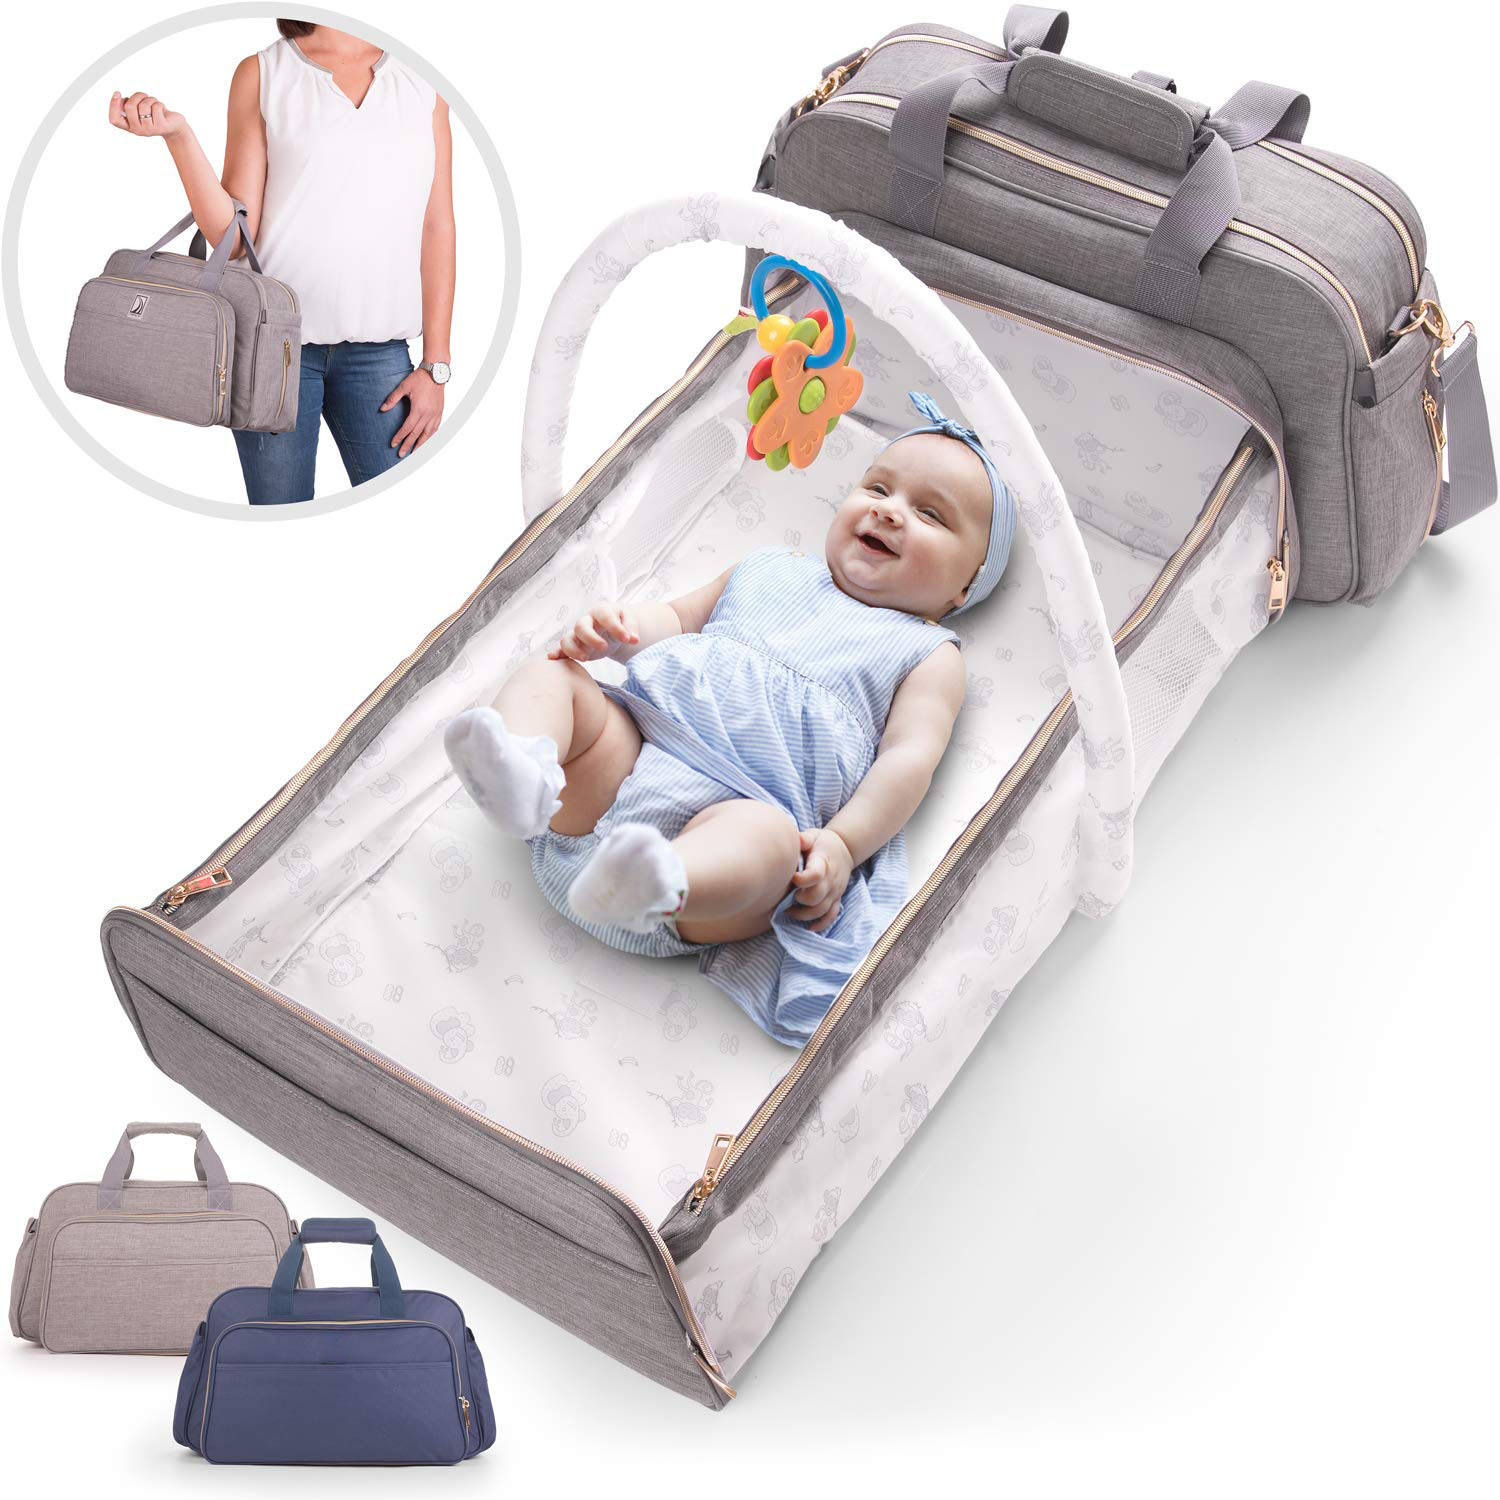 Stylish waterproof large 2 in1 multifunctional convertible travel tote mommy bags duffle baby diaper bag